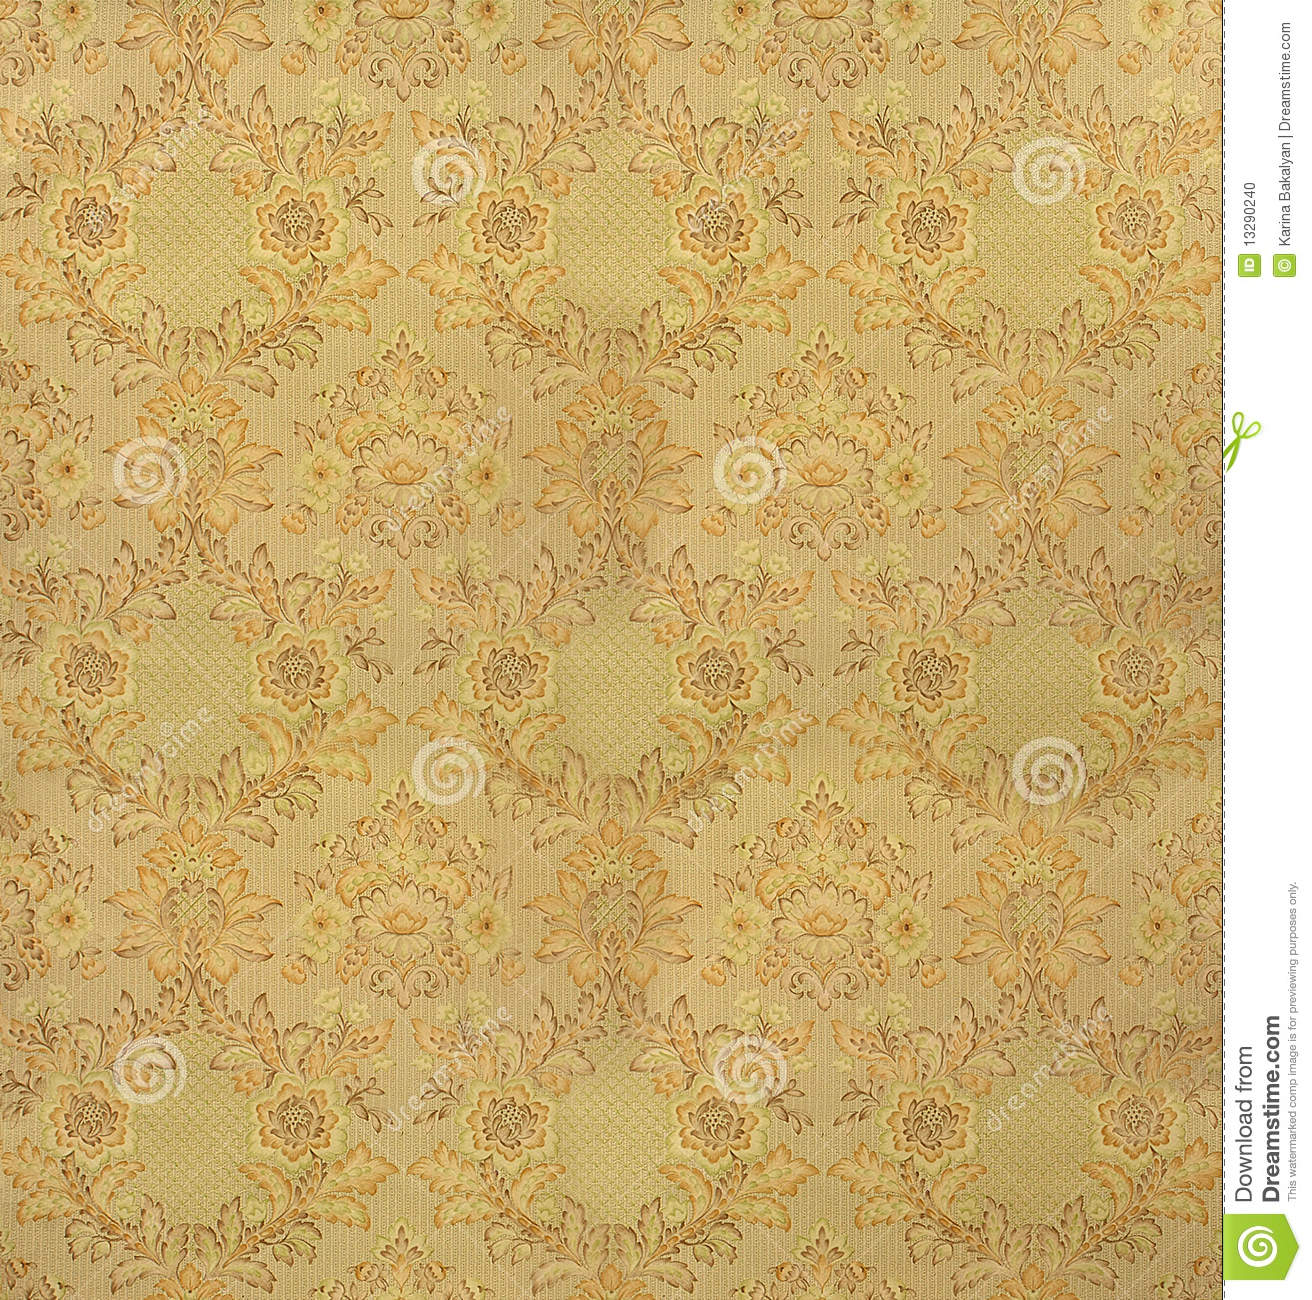 Retro Wallpaper Stock Photo Image Of Flower Paper Antique